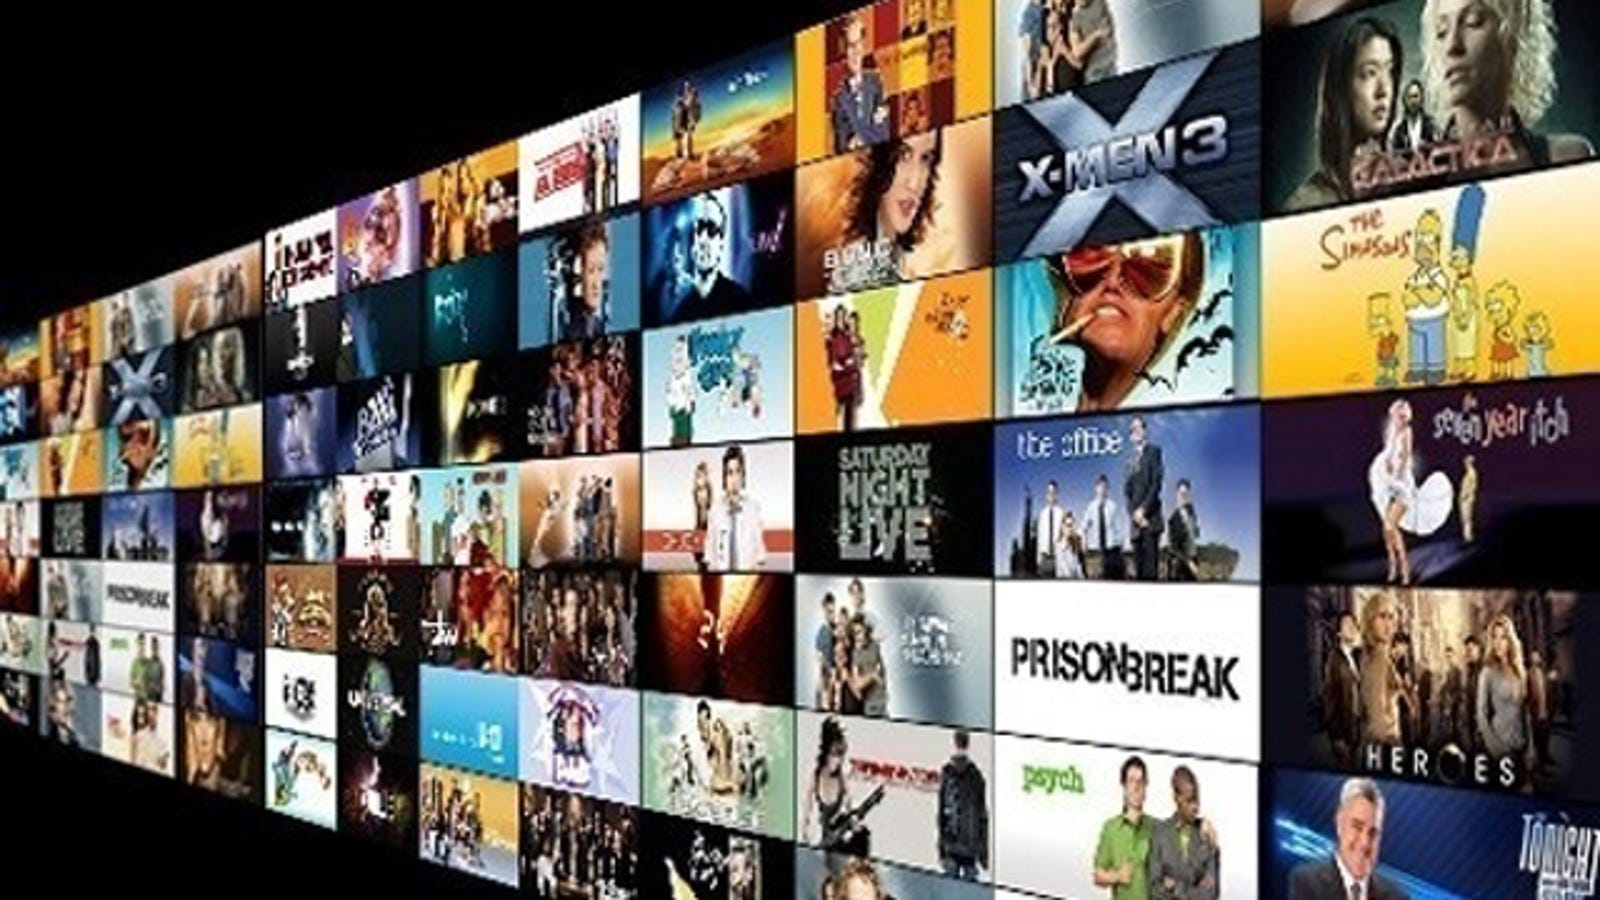 Video-On-Demand: A Complete Guide to All the TV and Movie